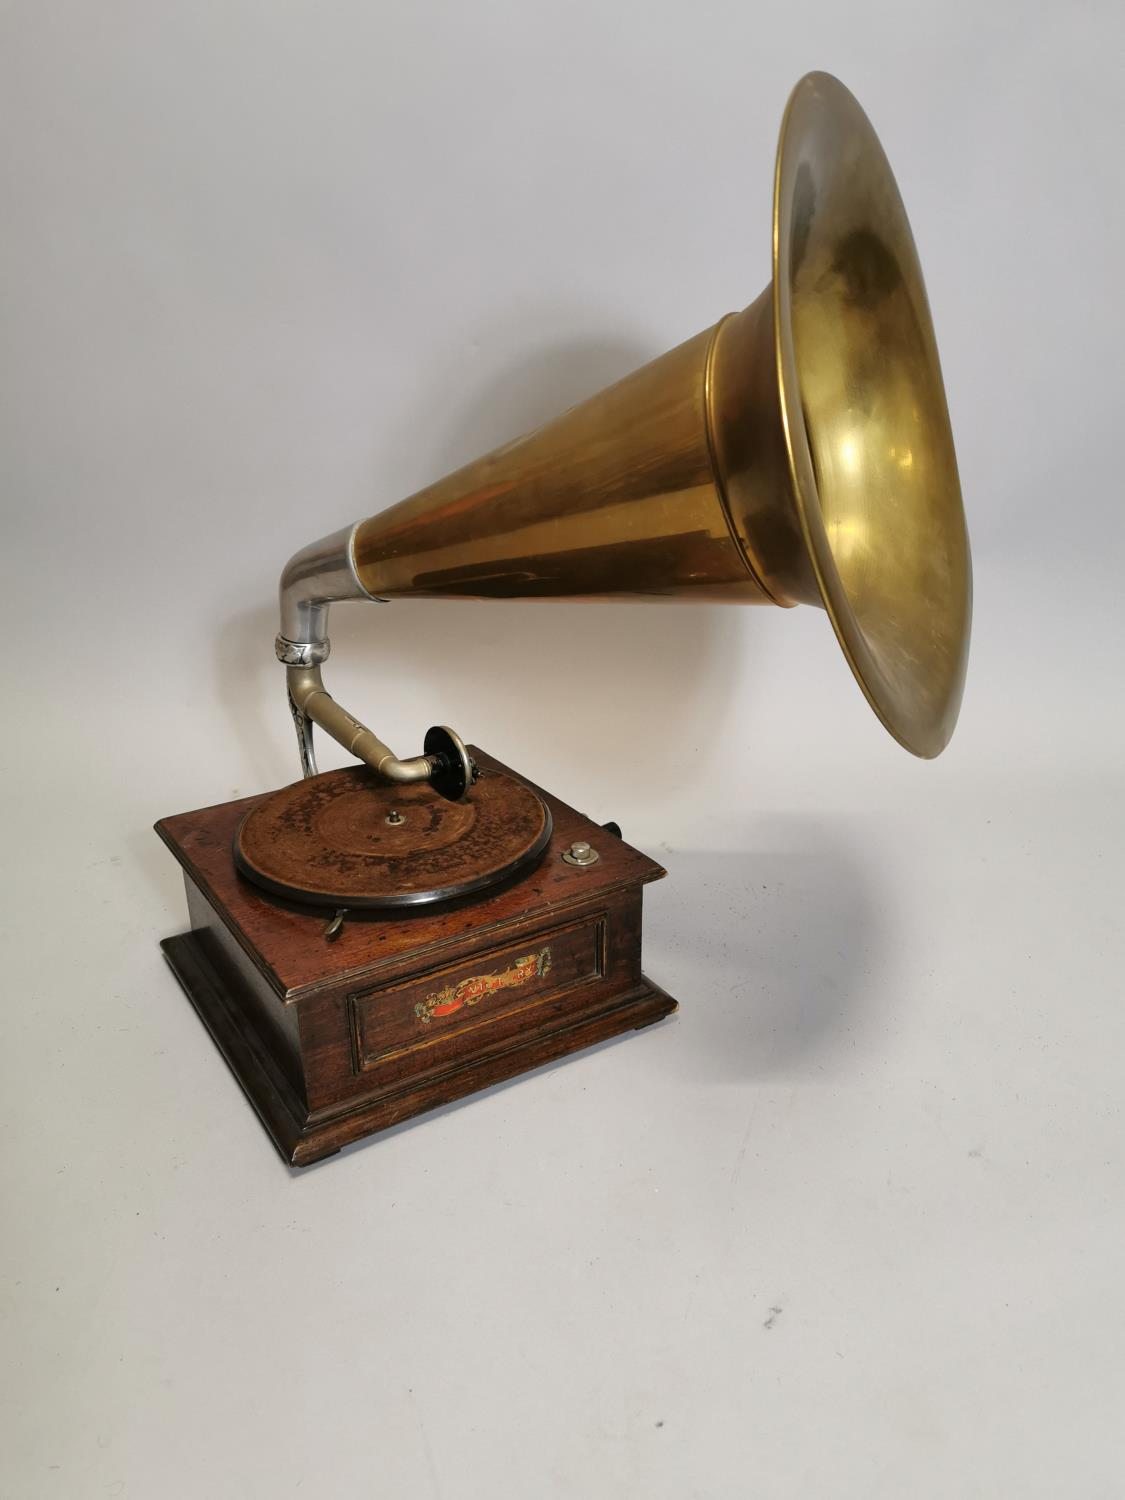 Victory gramophone in oak case with brass horn